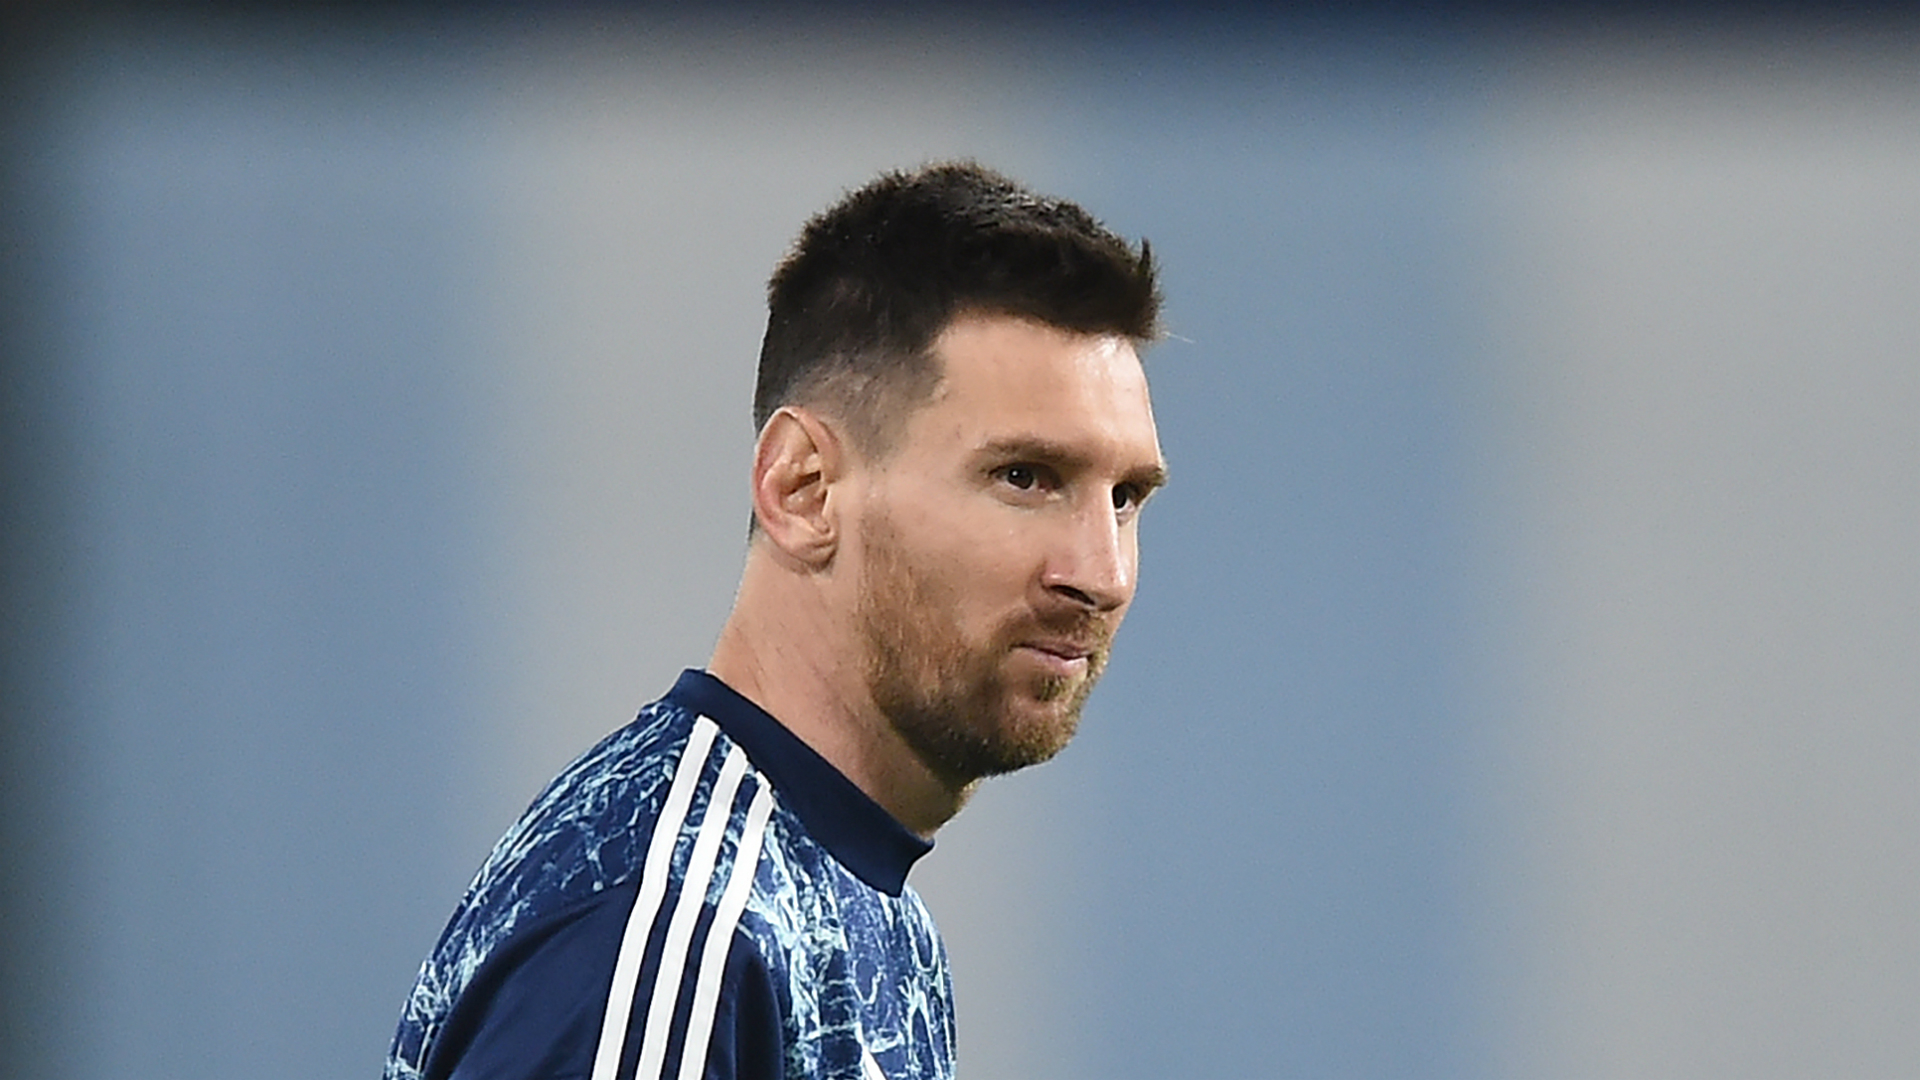 Messi will have his motives and reasons - Figo expects superstar to leave Barcelona next year